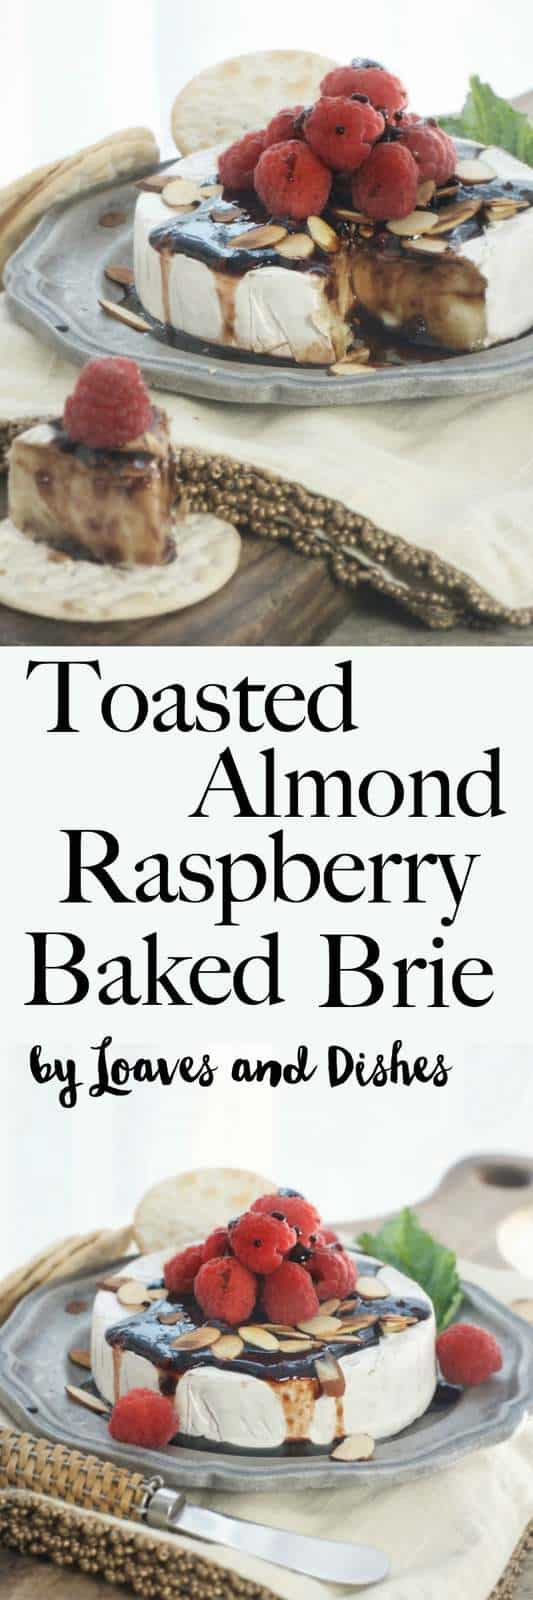 Easy Baked Brie with a honey raspberry toasted almond sauce. Serve as an appetizer with fruits for the holiday like cranberry or fig. Perfect for the little party pre bite.